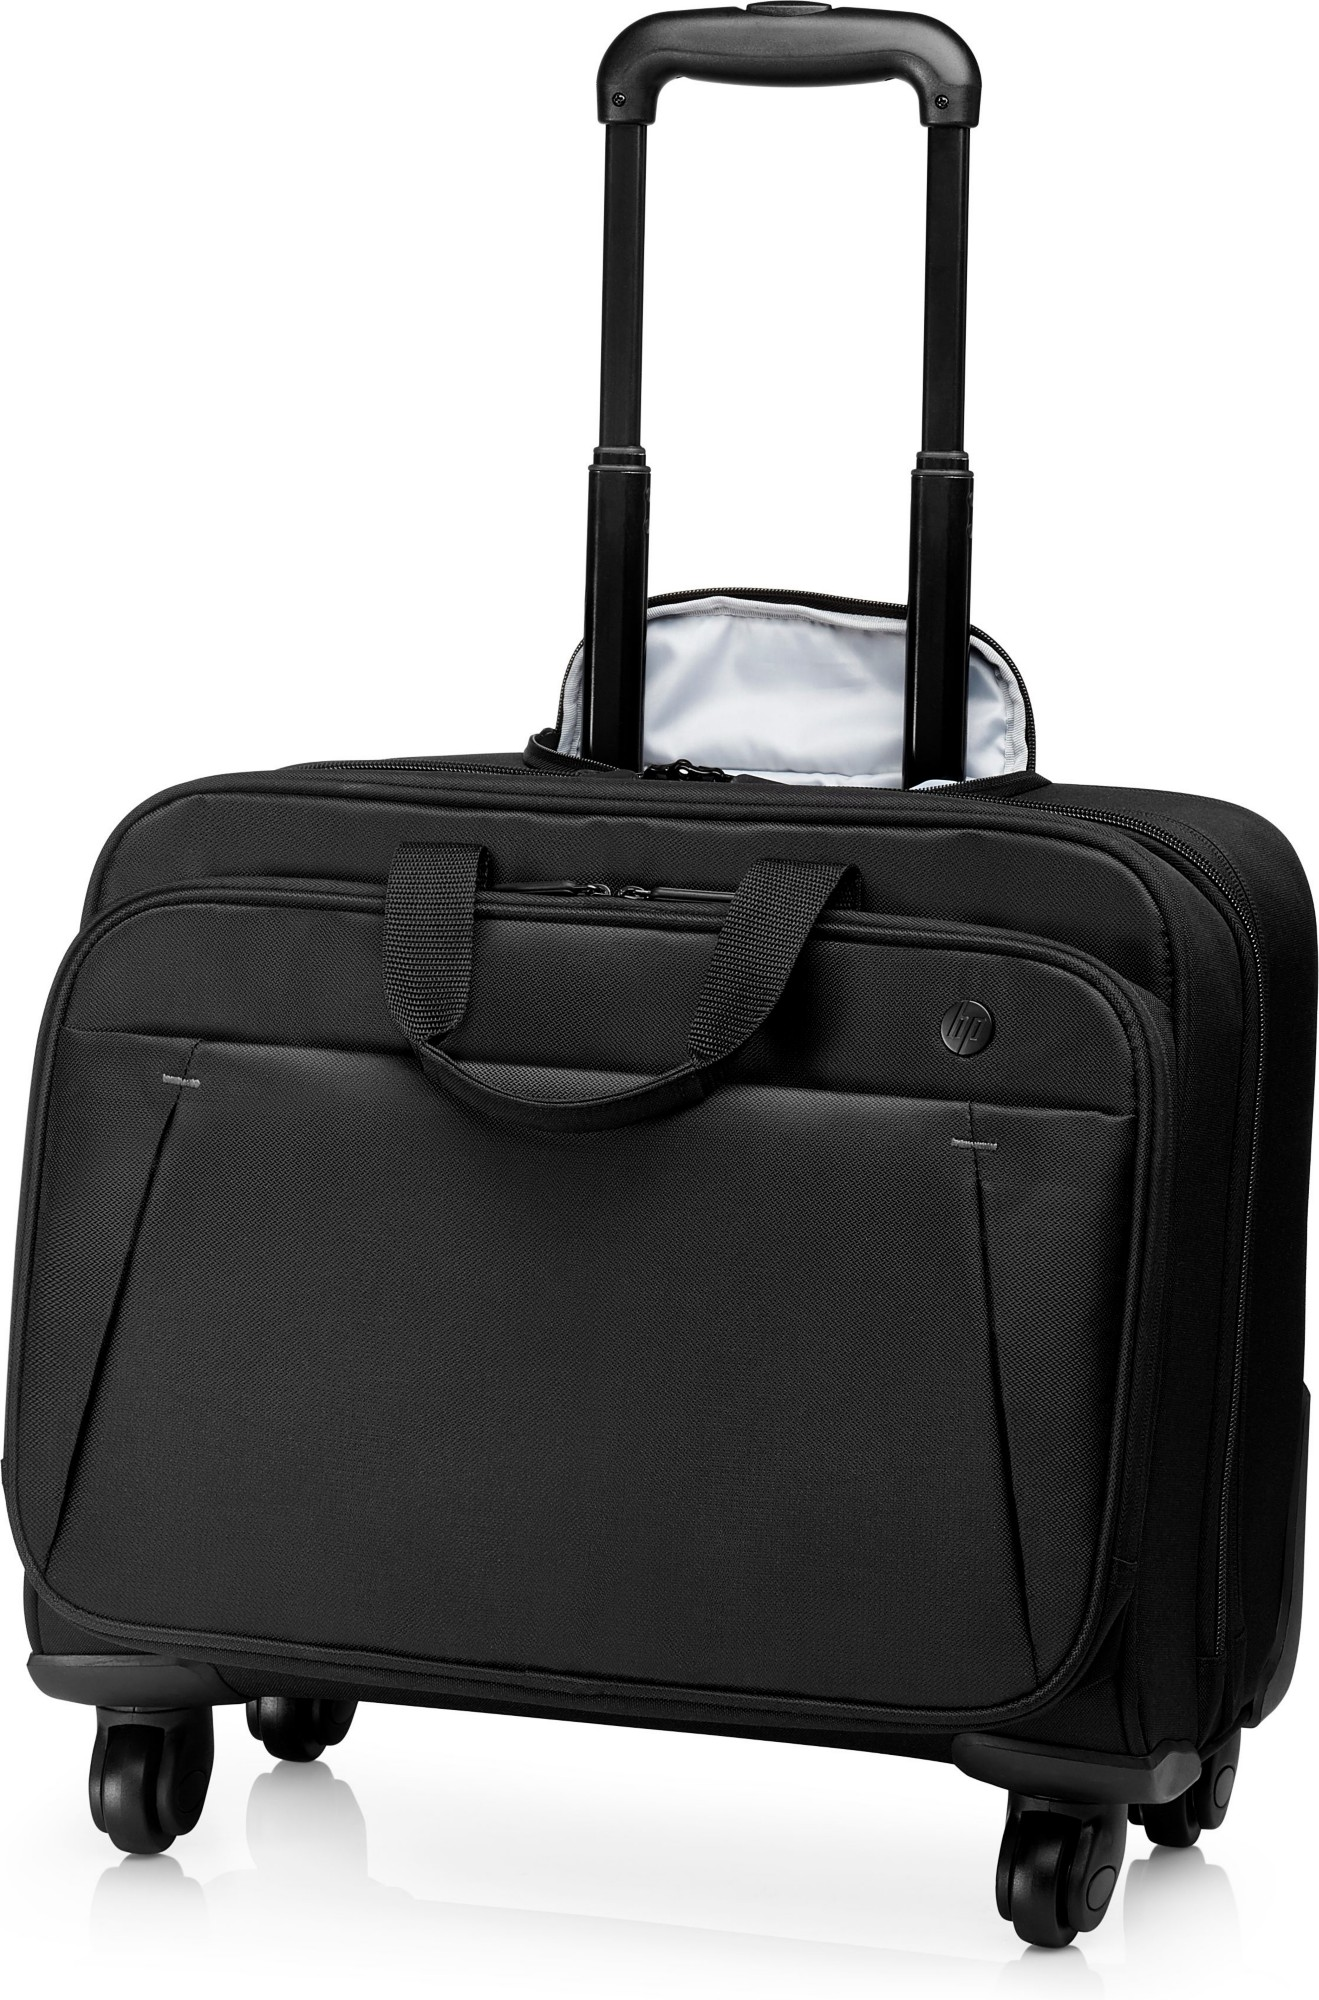 HP 2SC68AA 17.3 BUSINESS ROLLER CASE